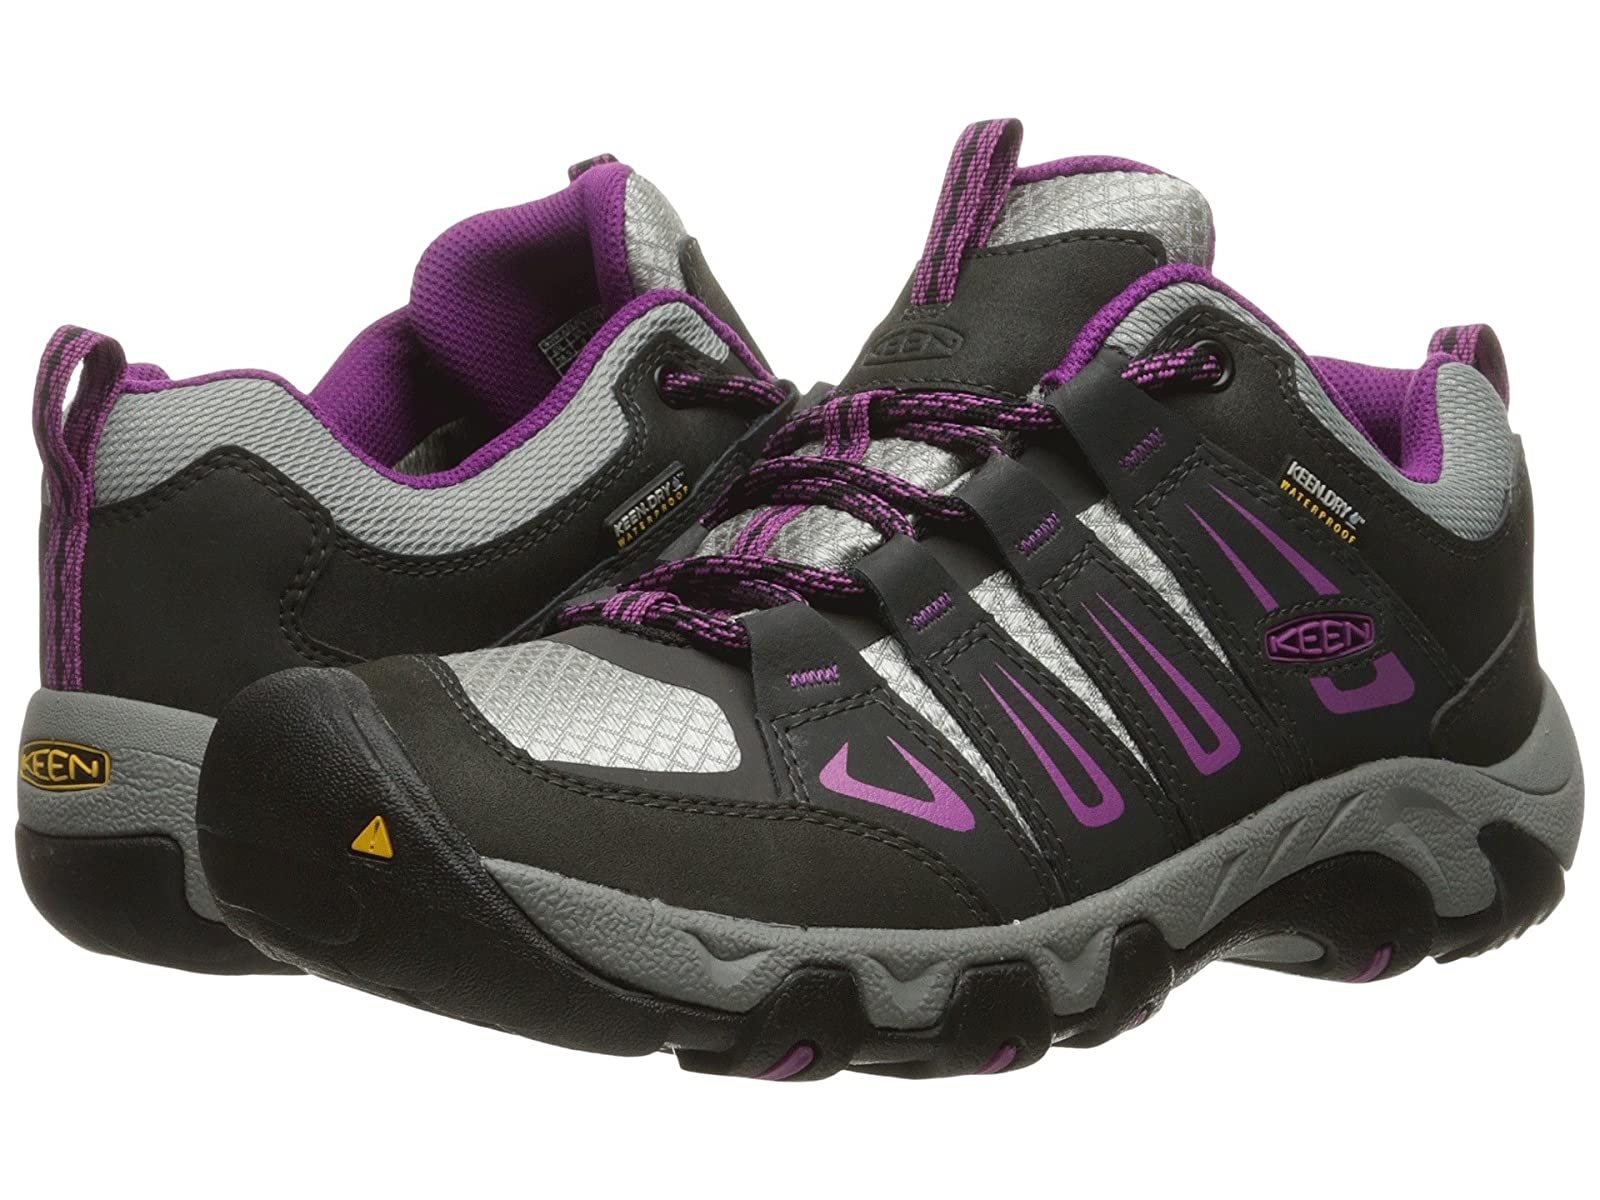 Keen Oakridge WaterproofCheap and distinctive eye-catching shoes